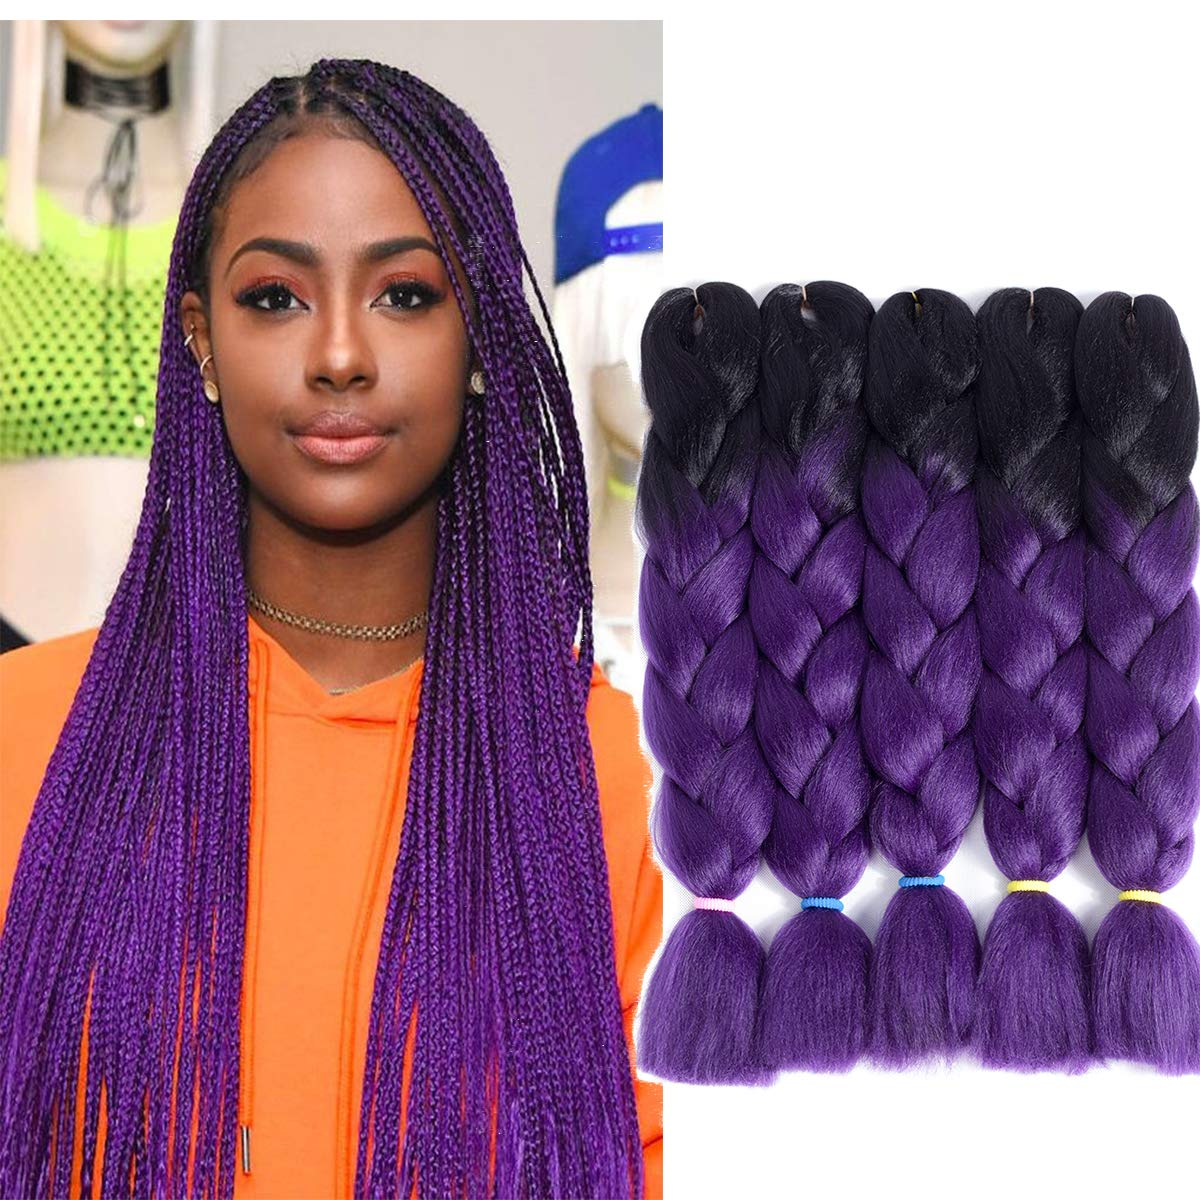 Silky Strands Ombre Synthetic Kanekalon Braiding Hair For Crochet Jumbo Braids False Hair Extensions Jumbo Braids